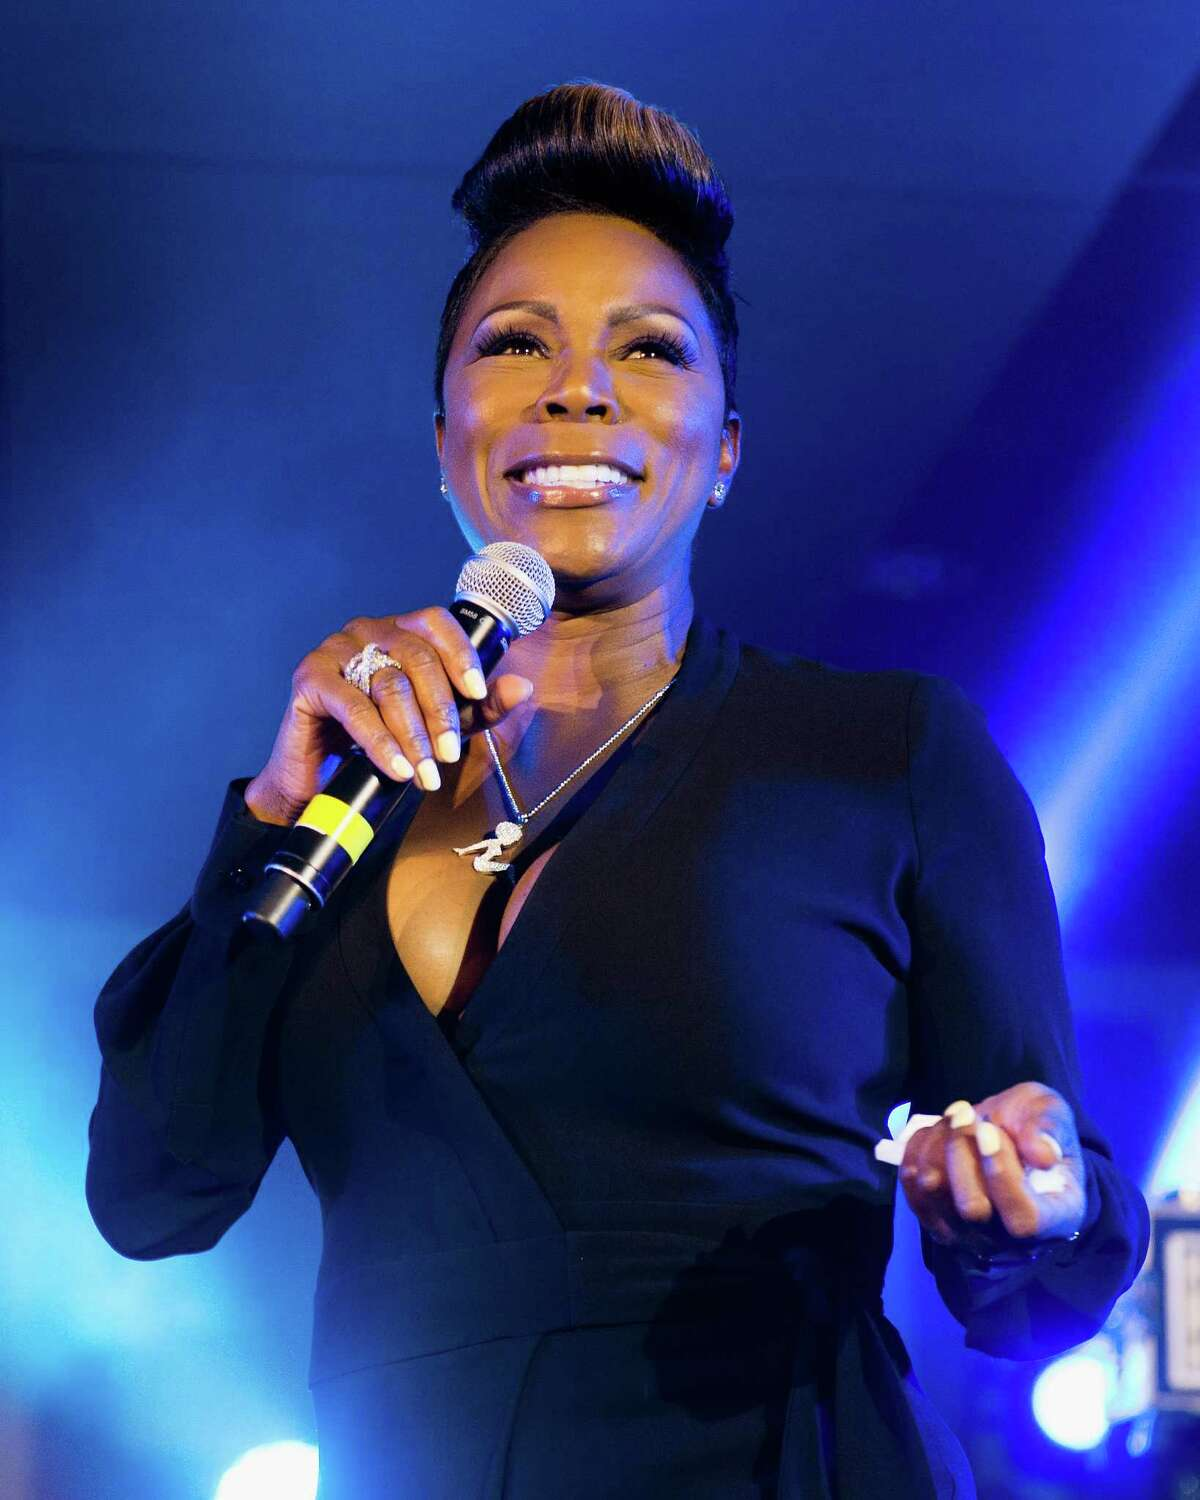 Stand-up comic Sommore served as host of BET's